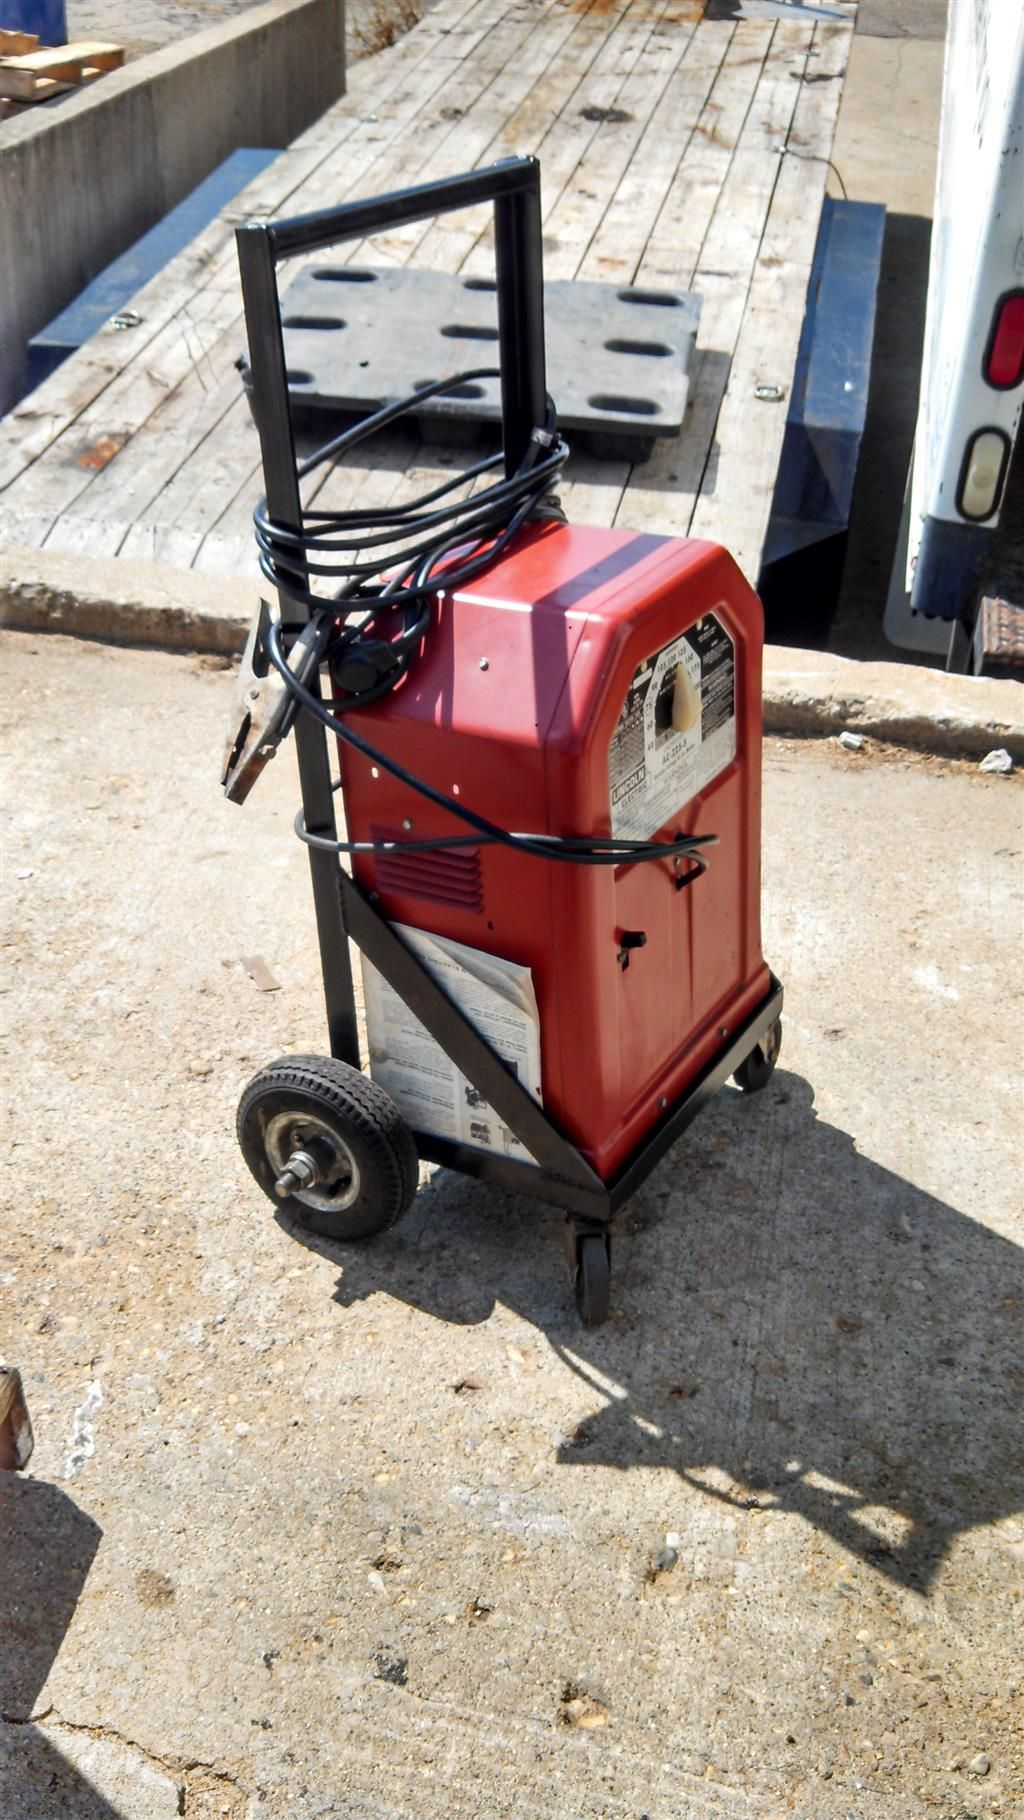 lincoln electric arc welder ac 225 s auction items lincoln electric arc welder ac 225 s